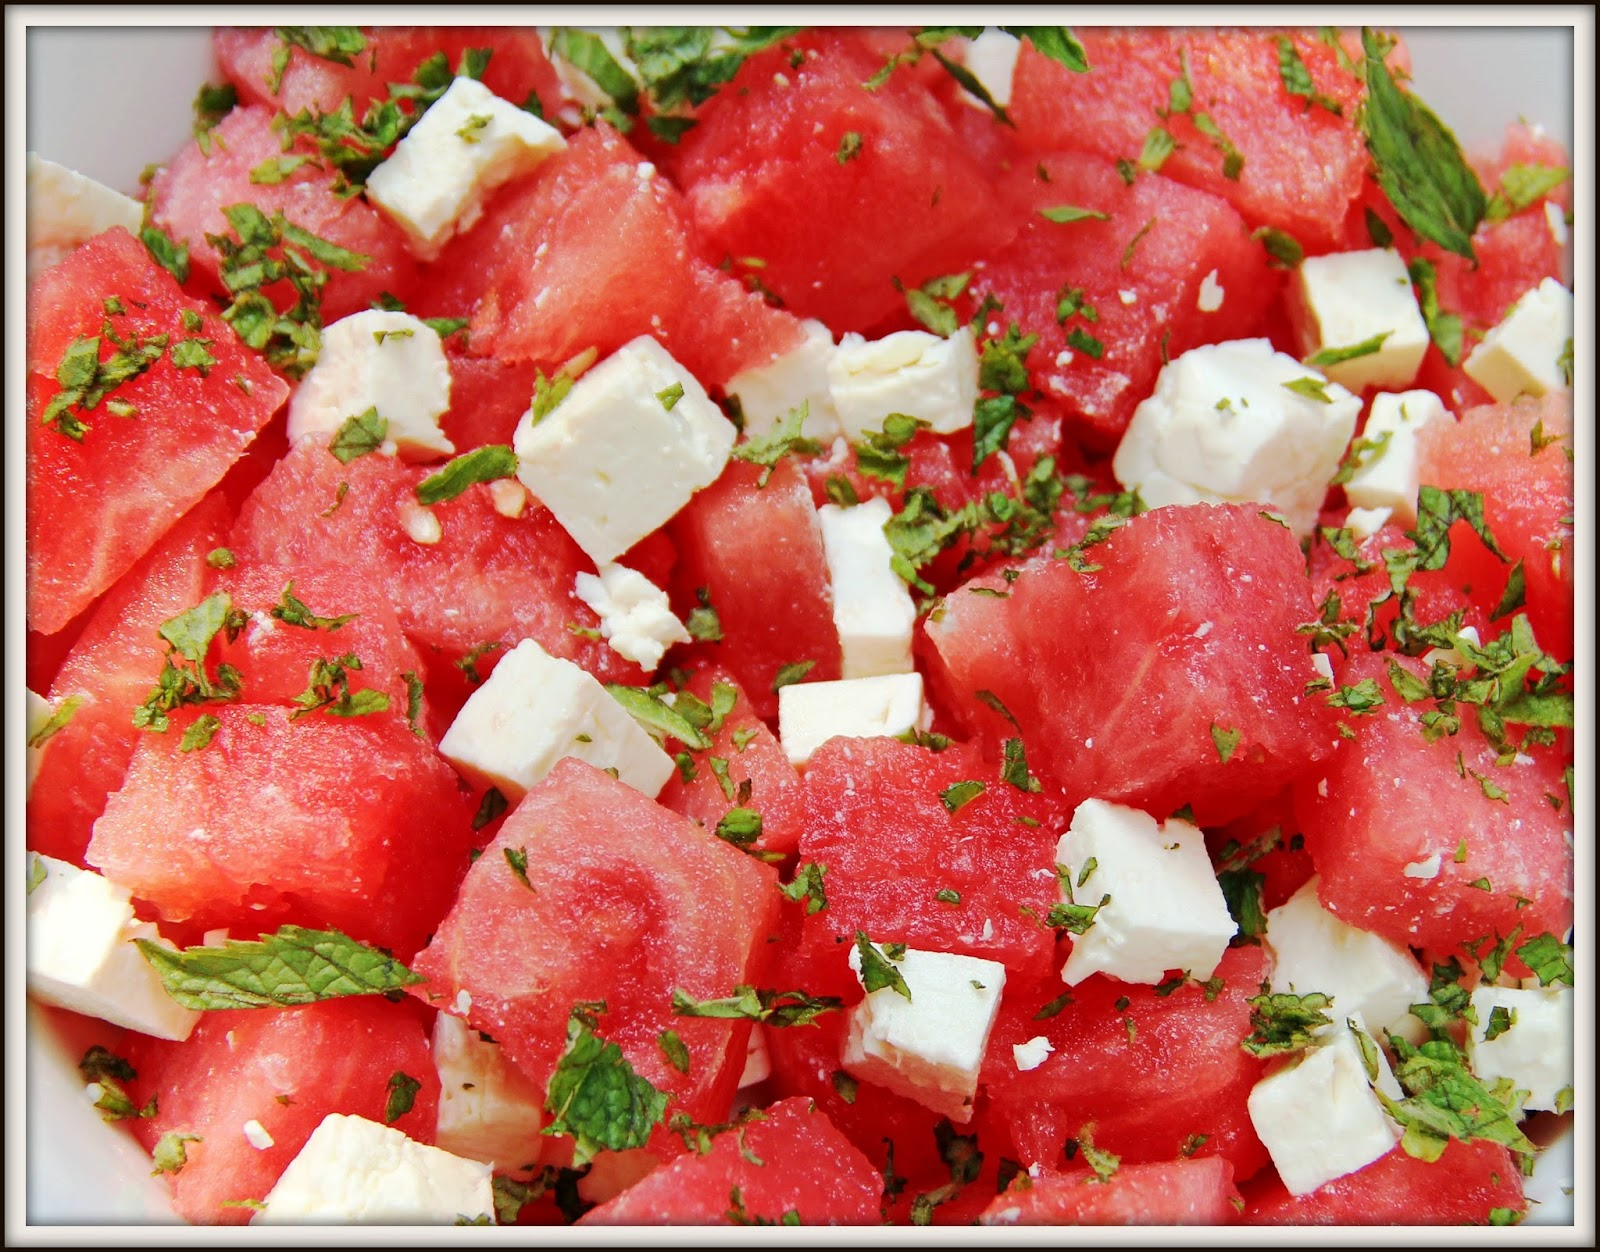 chicago foodie girl: Watermelon, Mint & Feta Salad